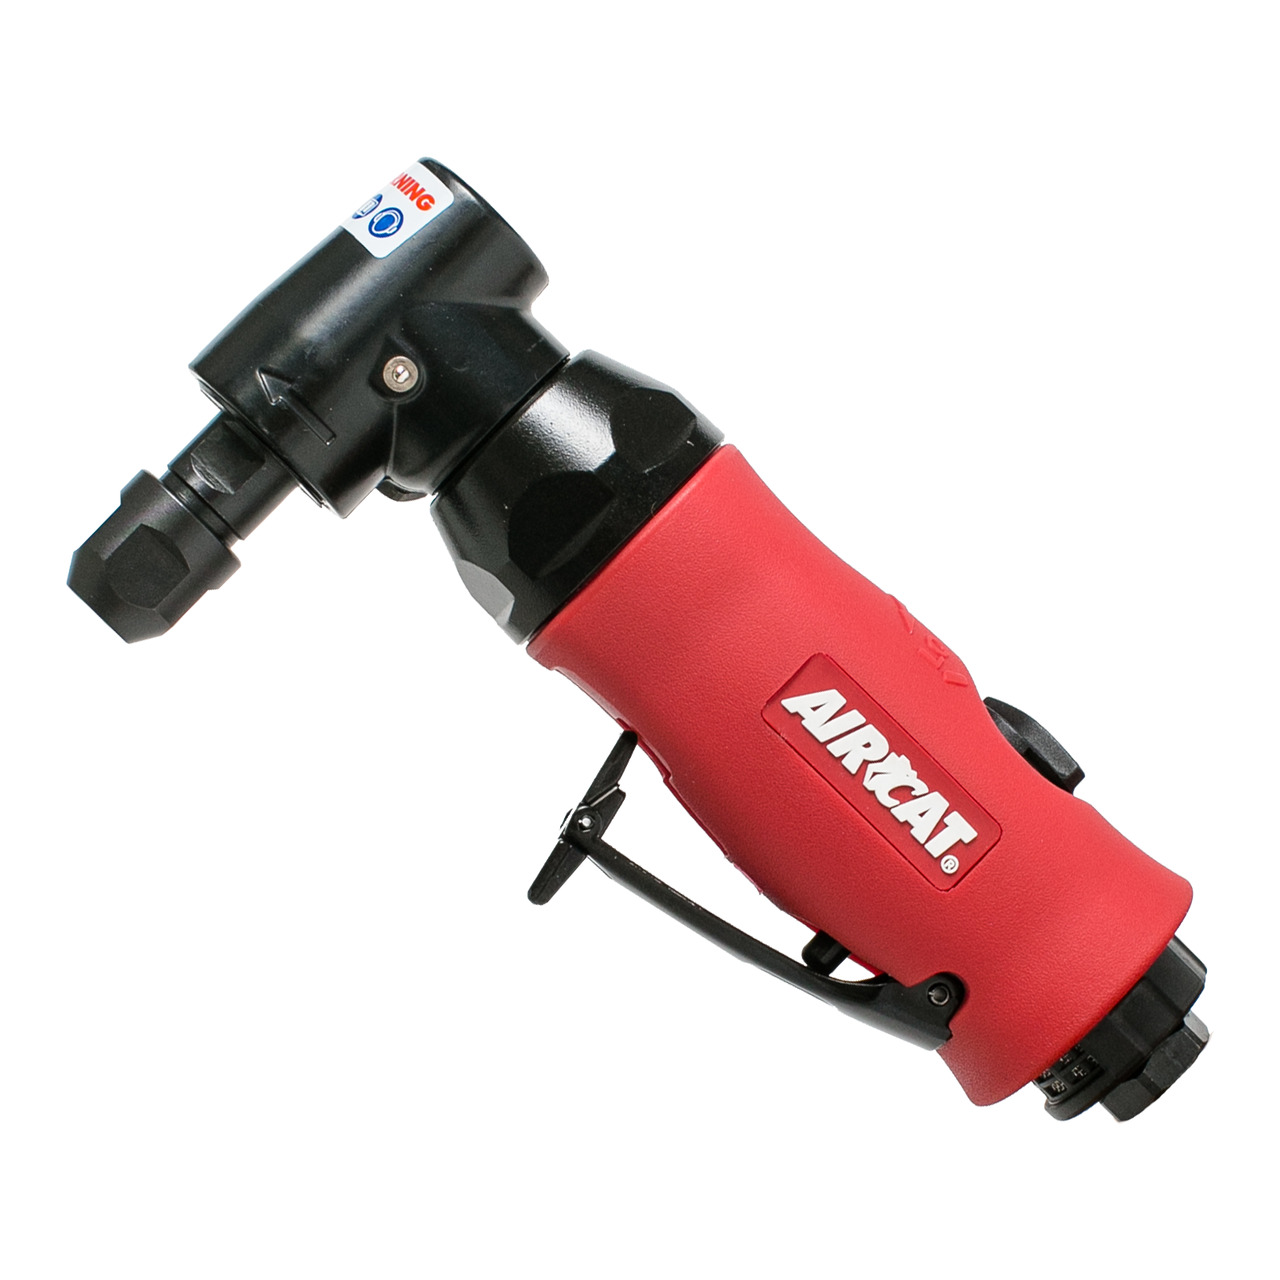 Aircat 6280 0.75 HP Angle Die Grinder with Spindle Lock. Available Now for 86.39